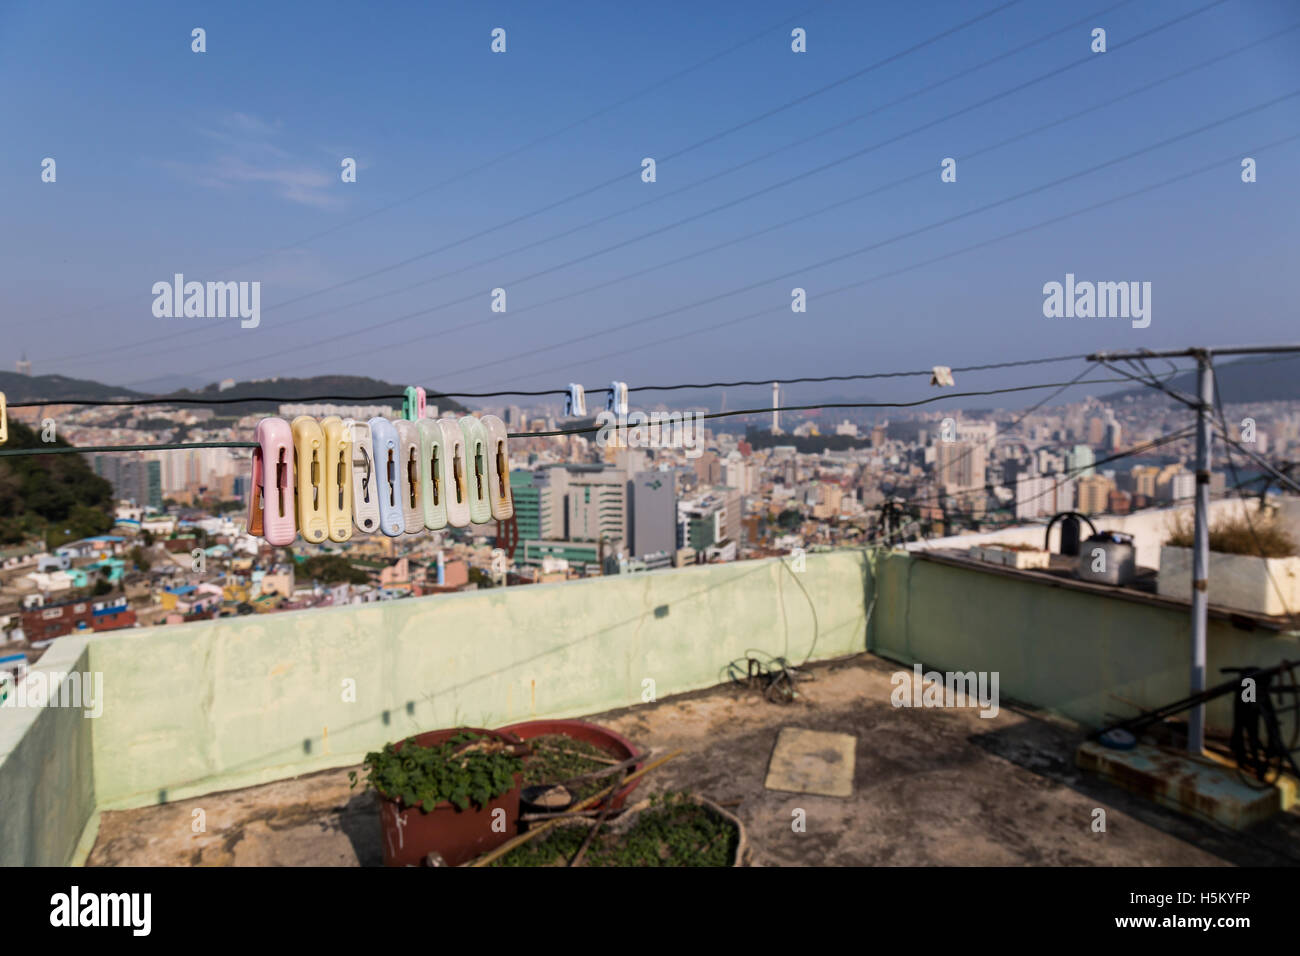 Cloths ping hanging on a rooftop in Busan, South Korea - Stock Image